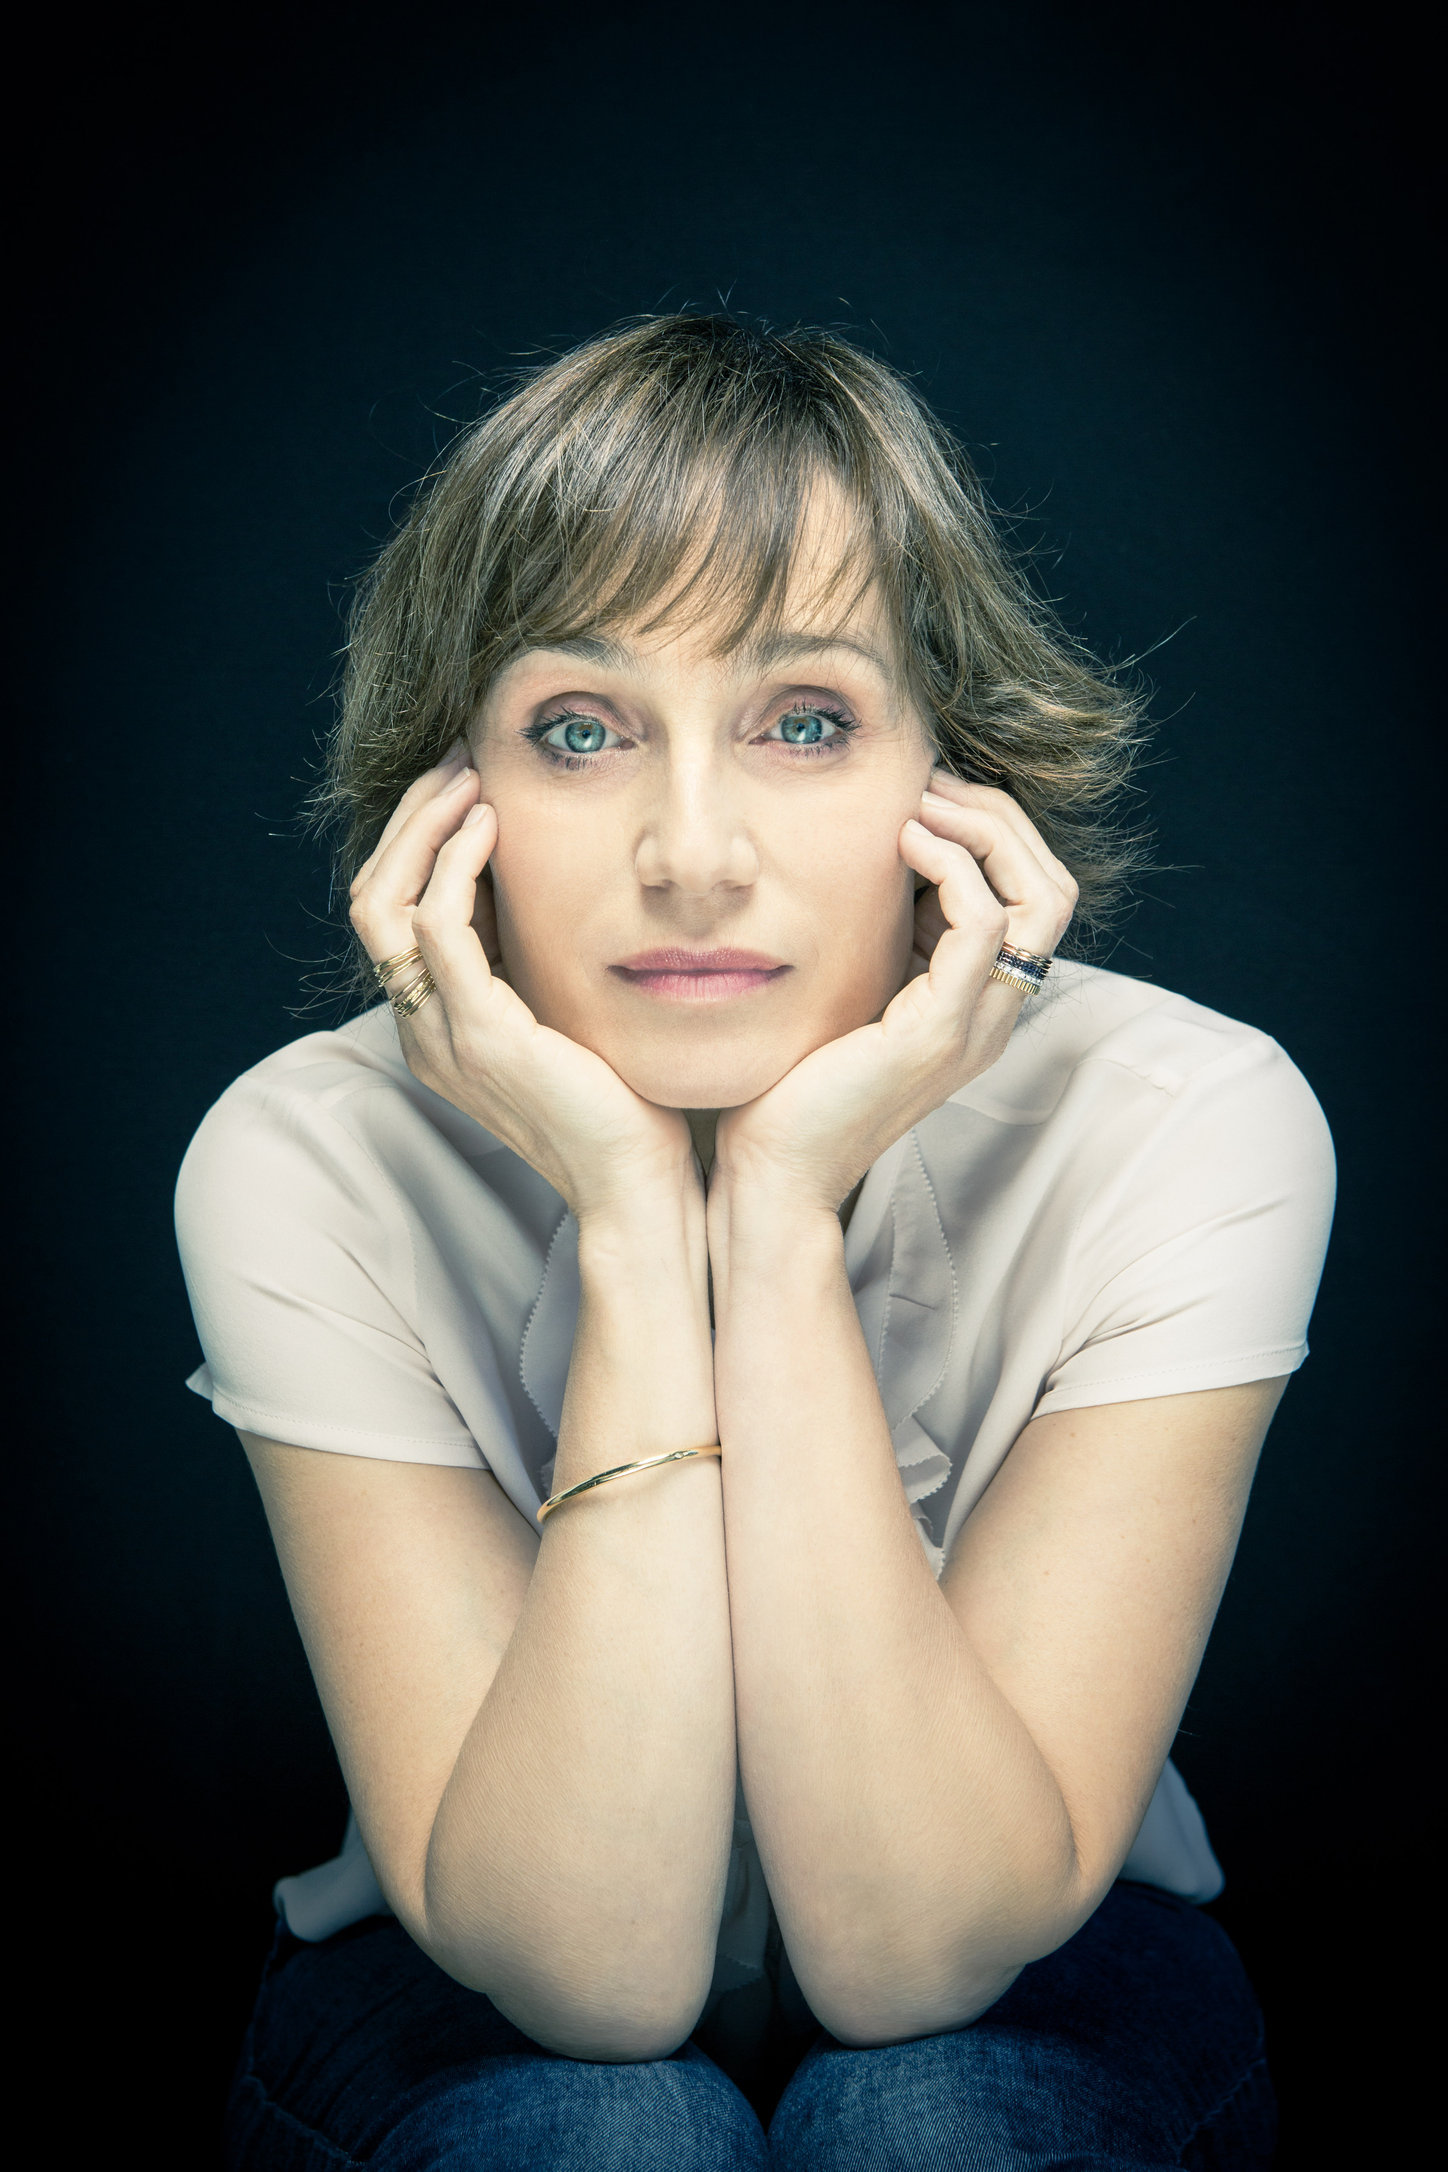 kristin scott thomas, actress